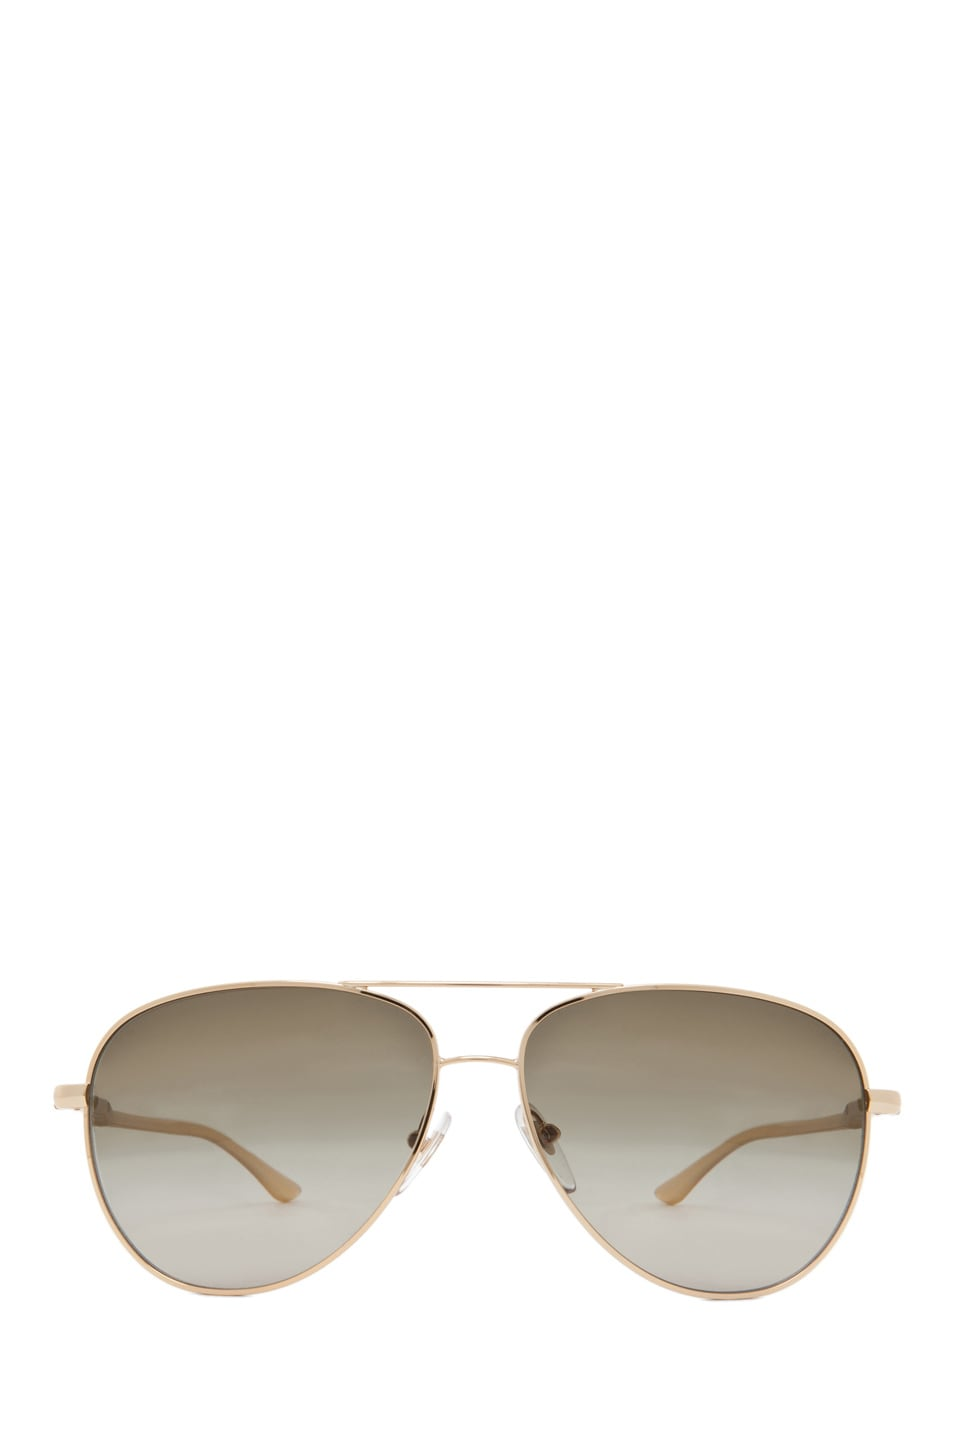 Image 1 of Stella McCartney Aviator Sunglasses in Nude & Gold